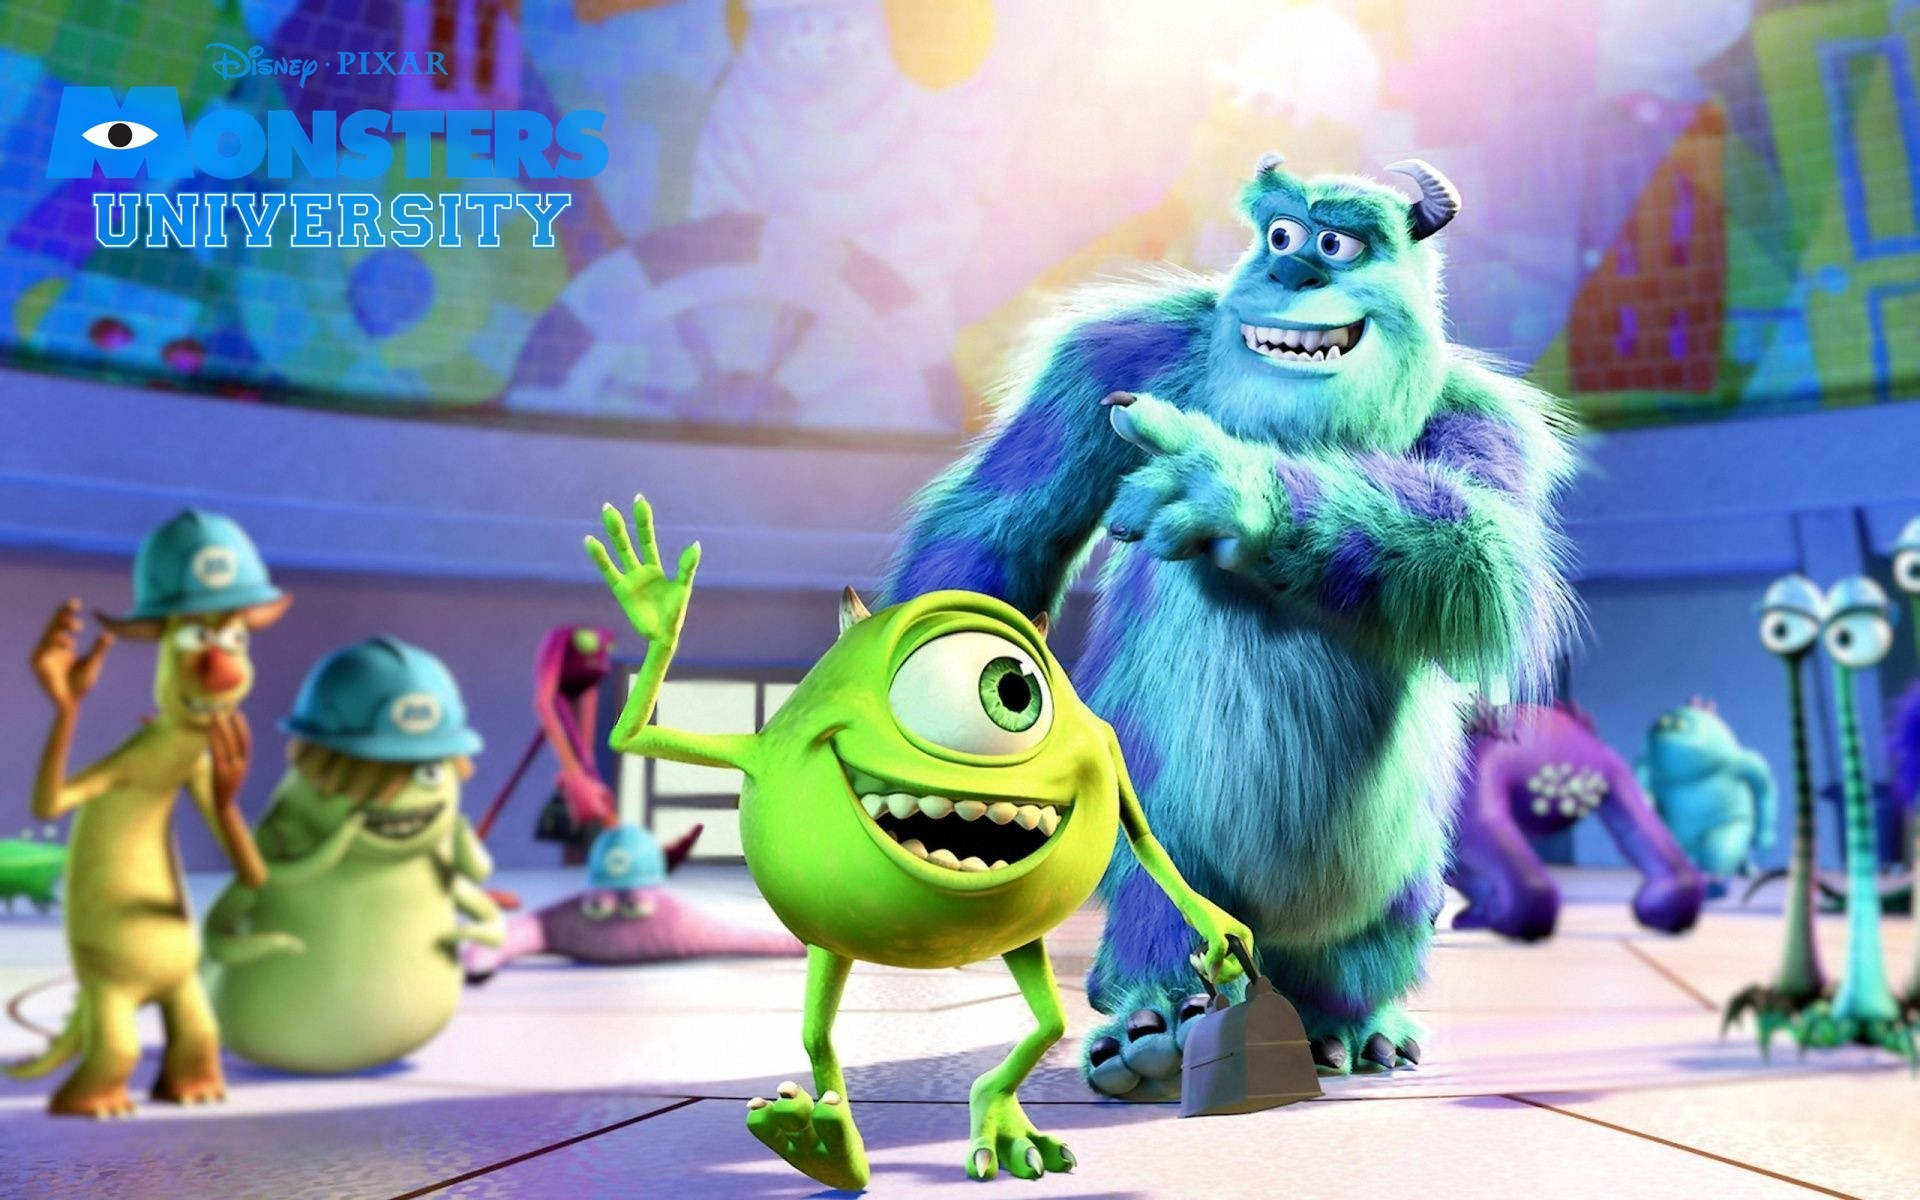 Fondos de pantalla Película Monsters university